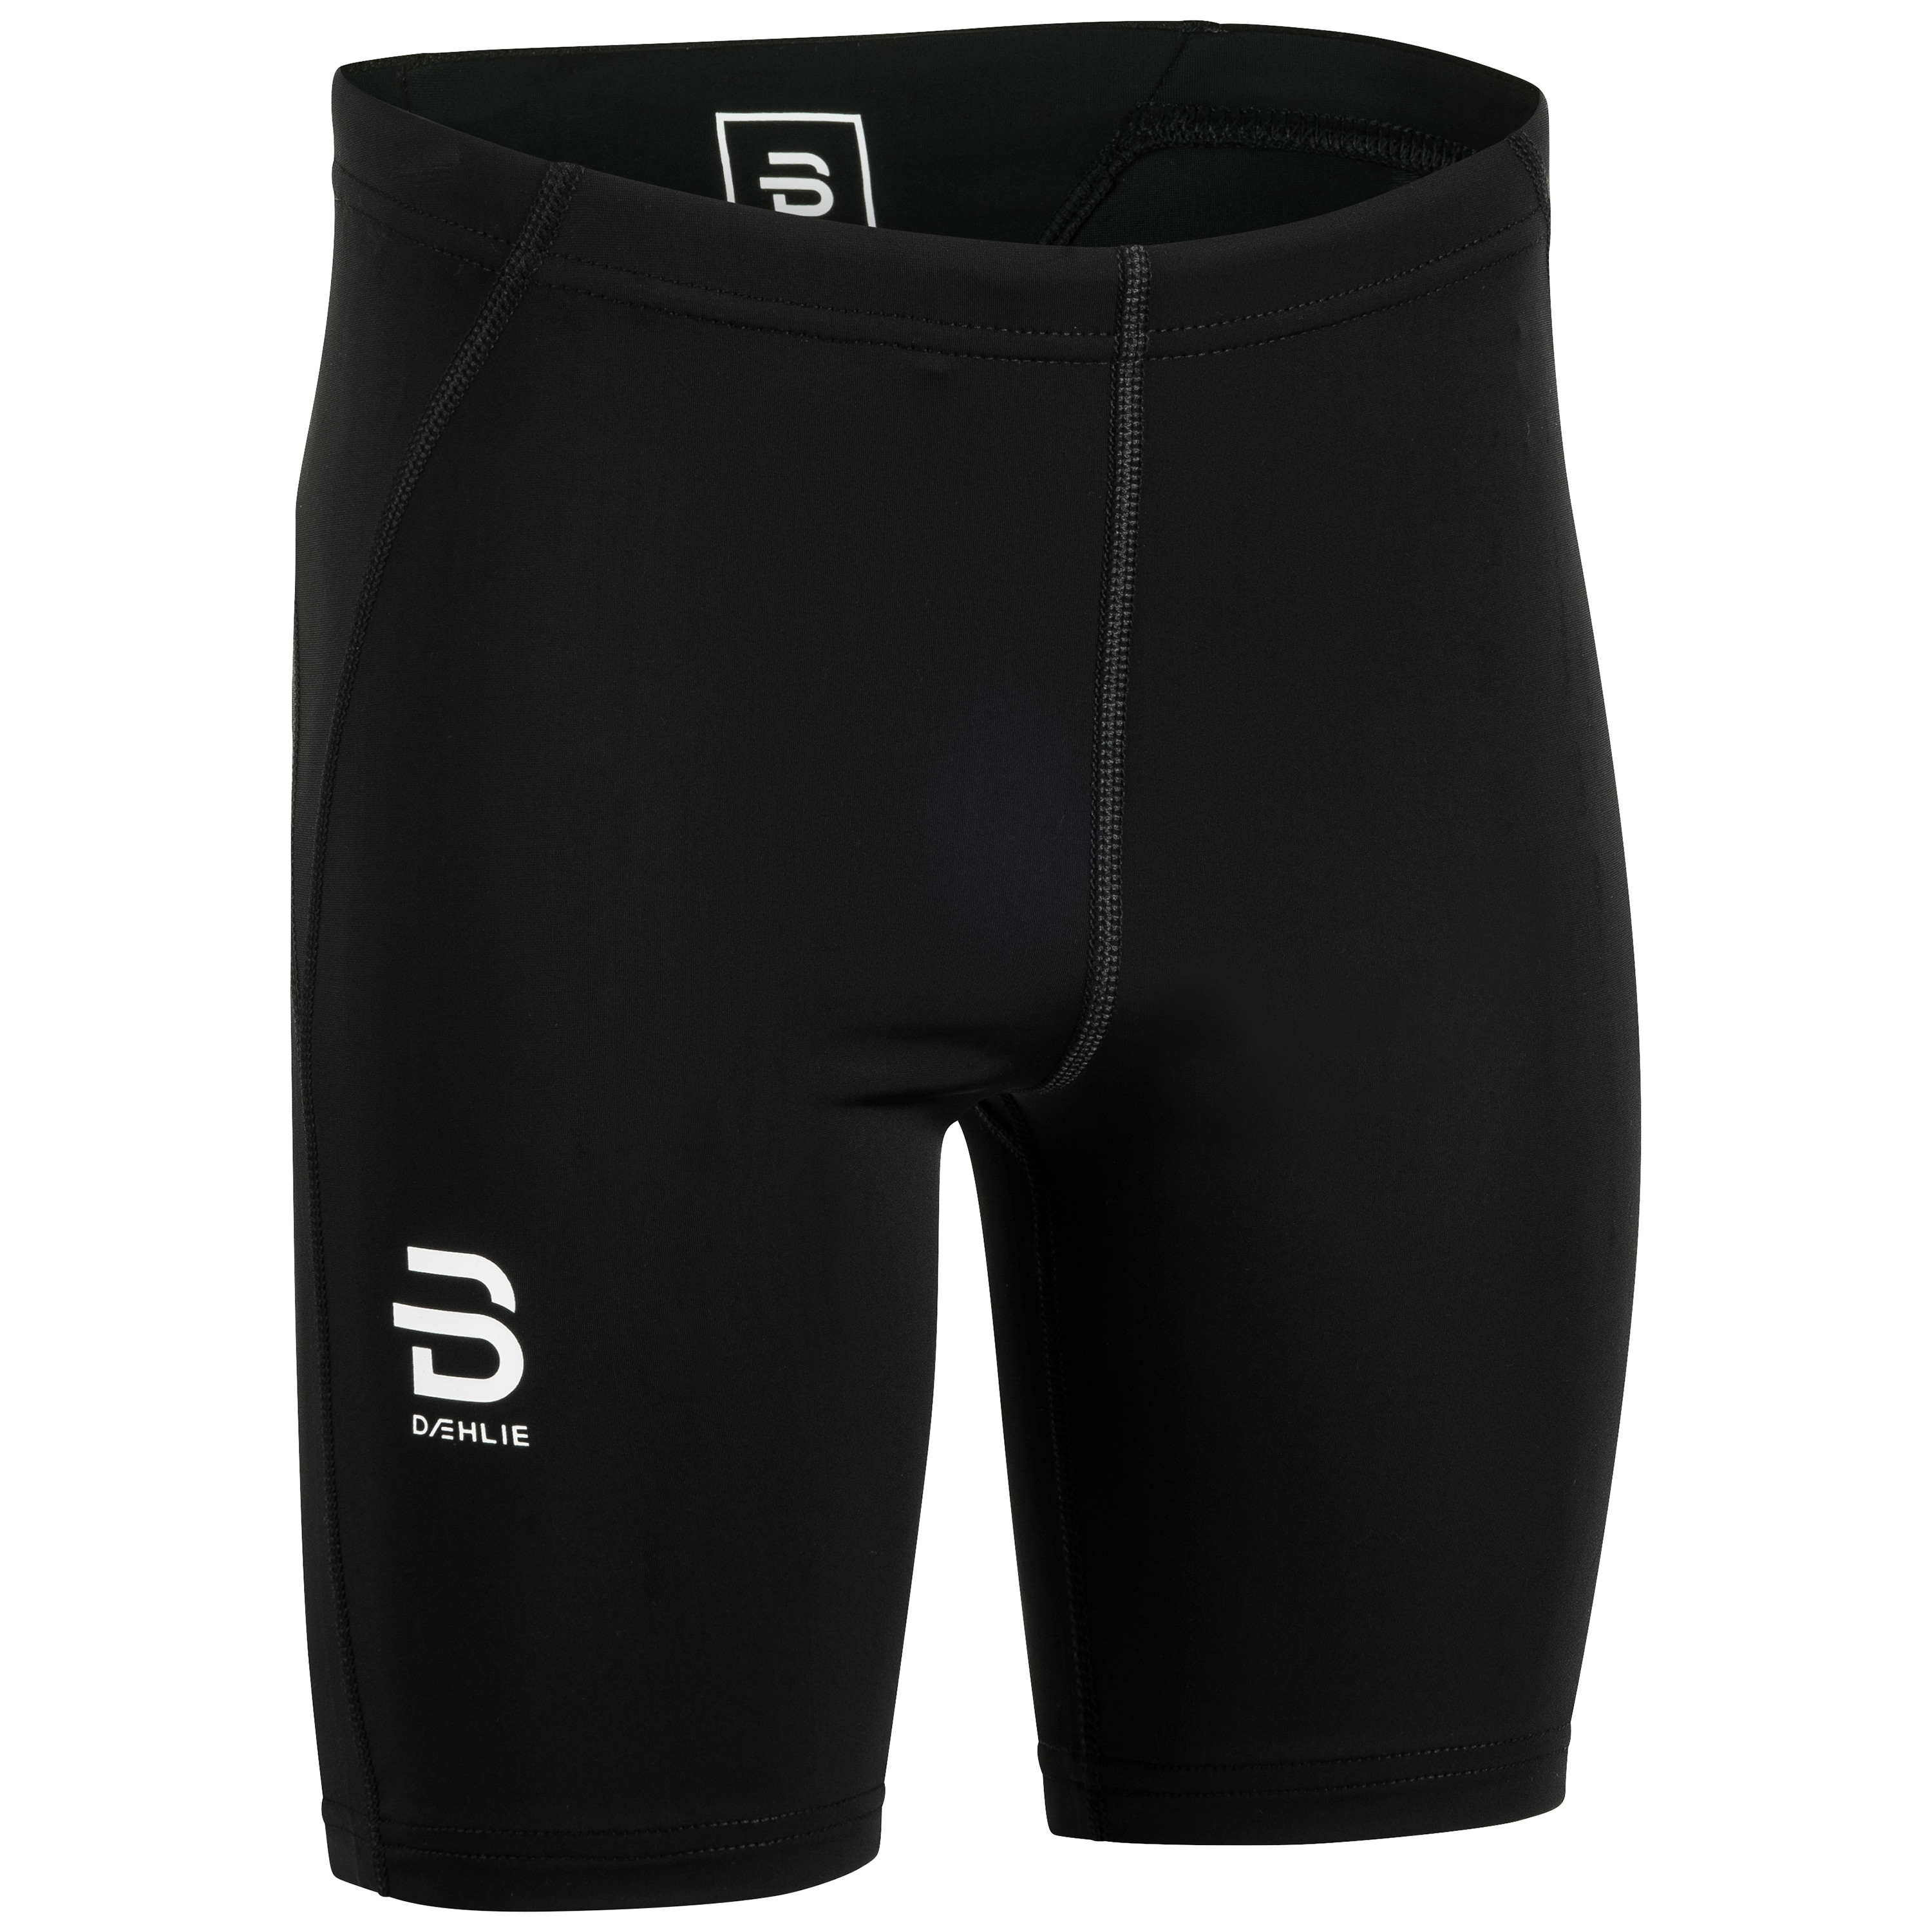 Dæhlie Shorts Focus Jr